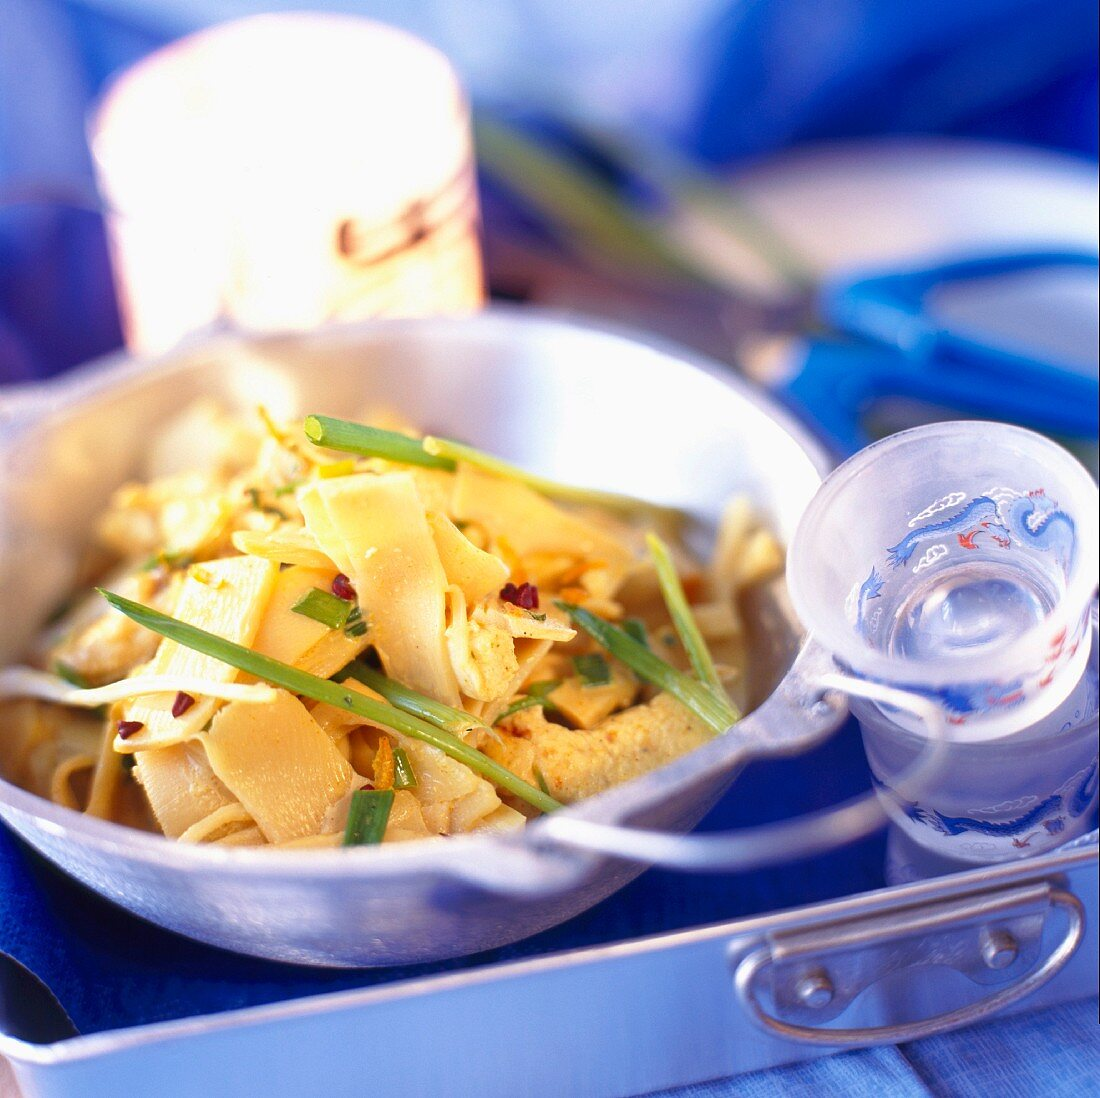 Chicken with bean sprouts